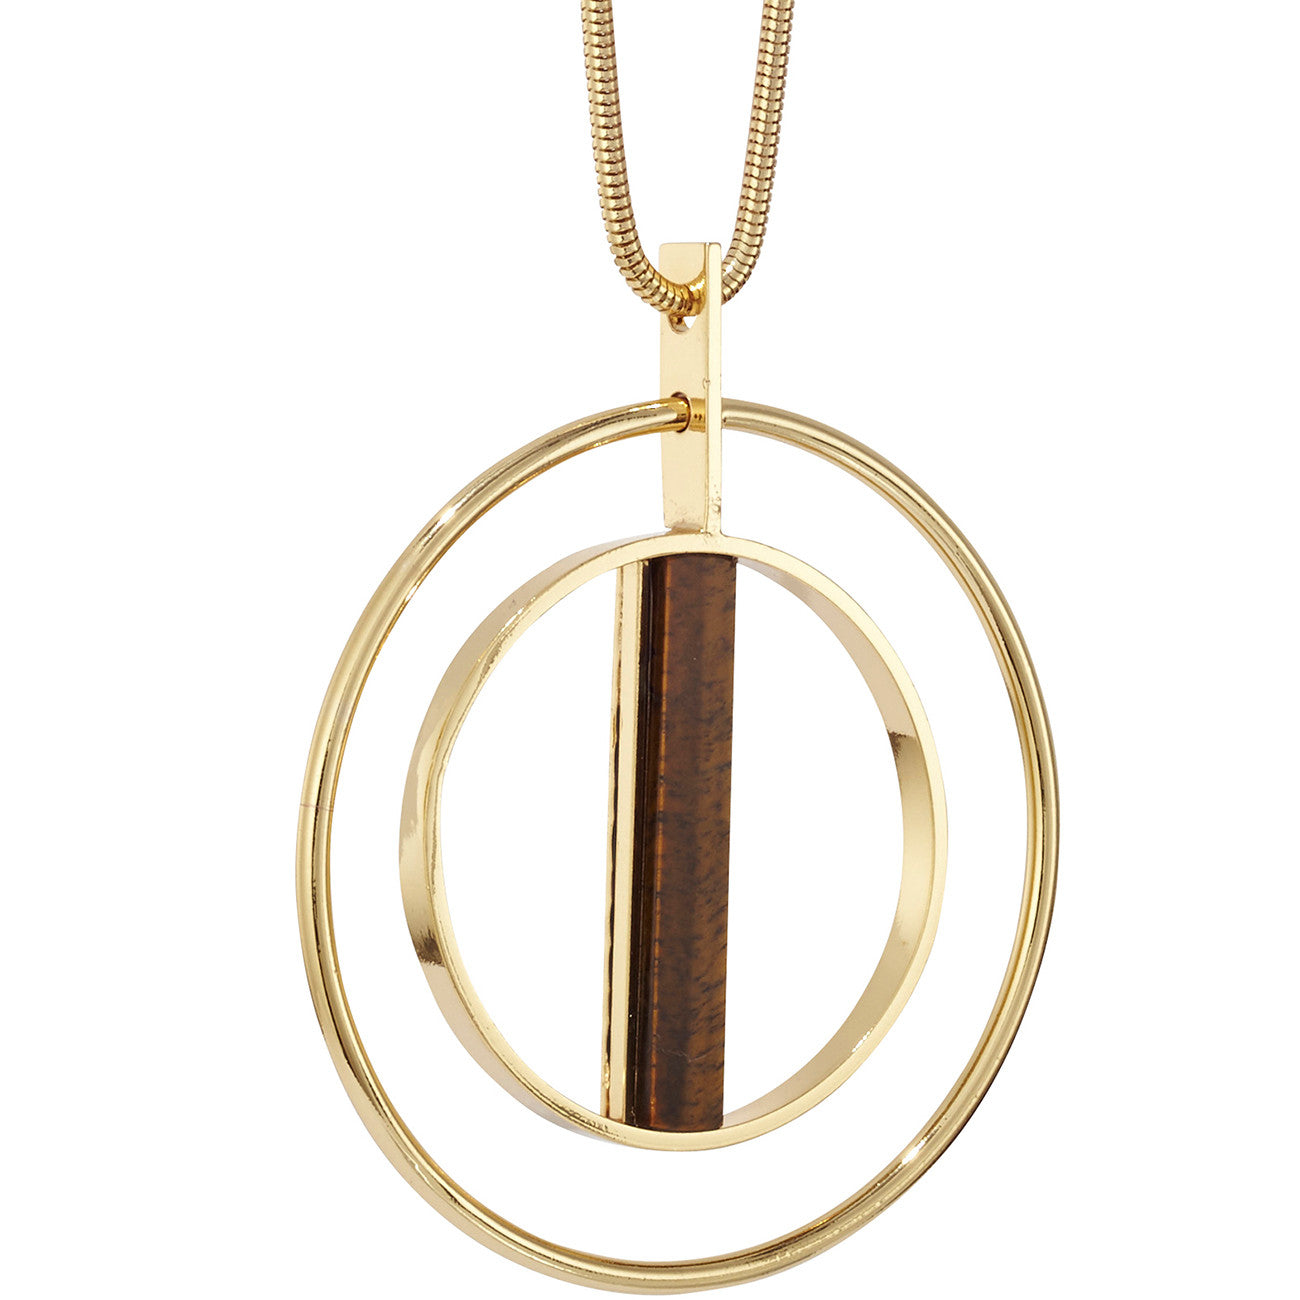 Lennox pendant lennox pendant by jenny bird in gold with tigers eye stone aloadofball Gallery